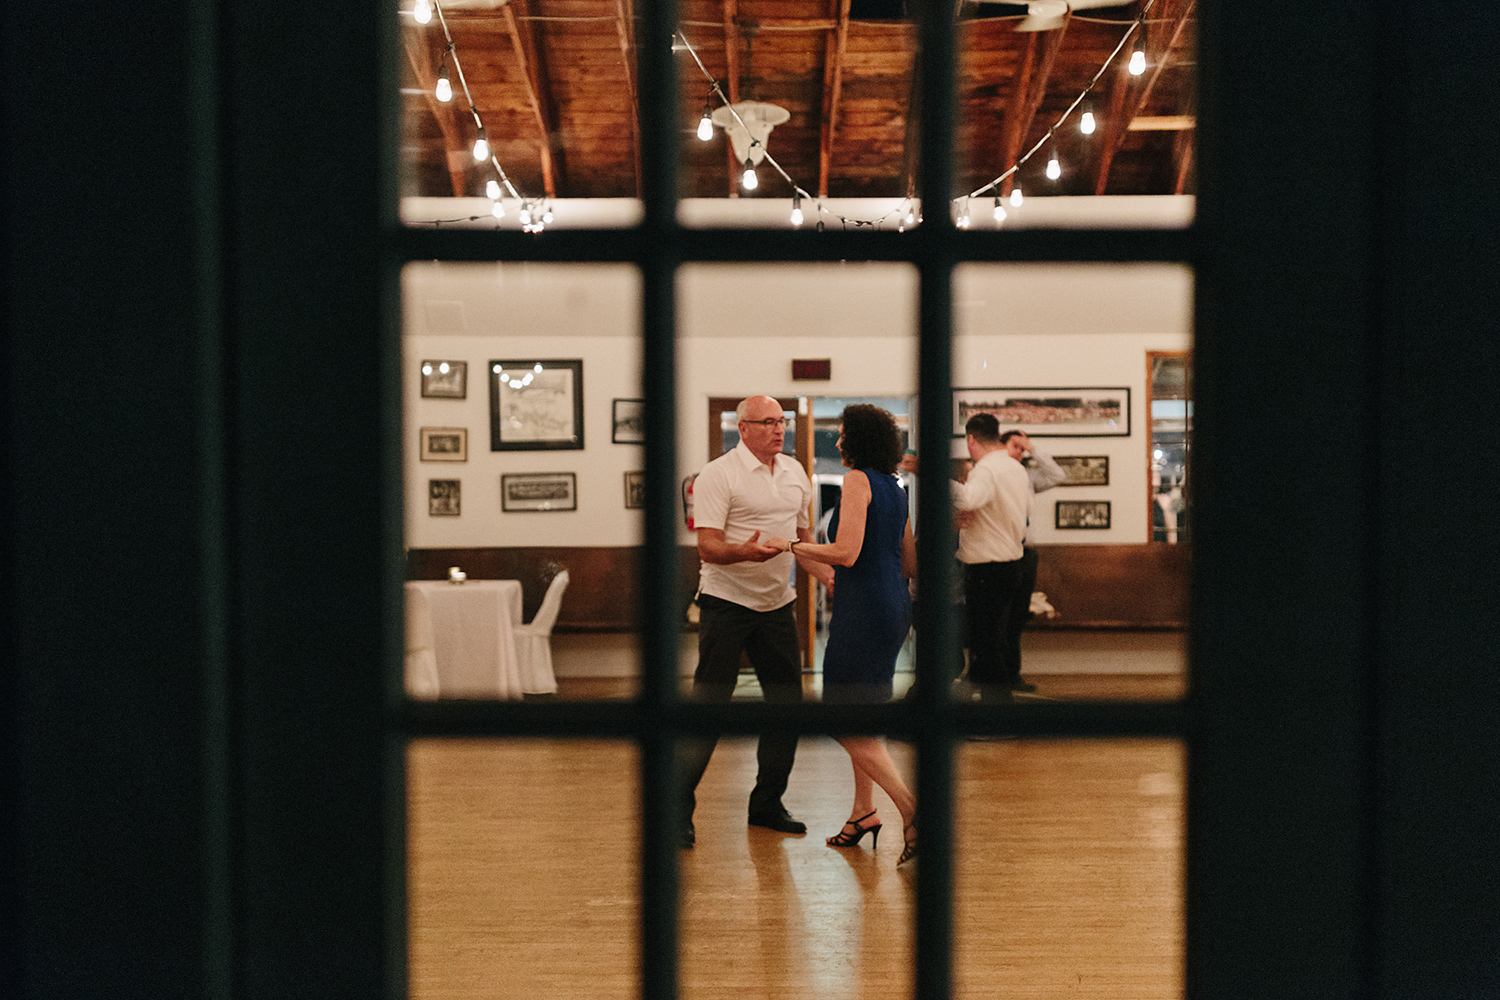 Best-Film-Wedding-Photographers-3b-photography-analog-photography-wards-island-clubhouse-junebug-weddings-vintage-venue-reception-guests-dancing-candid-moments-memories-through-window.jpg